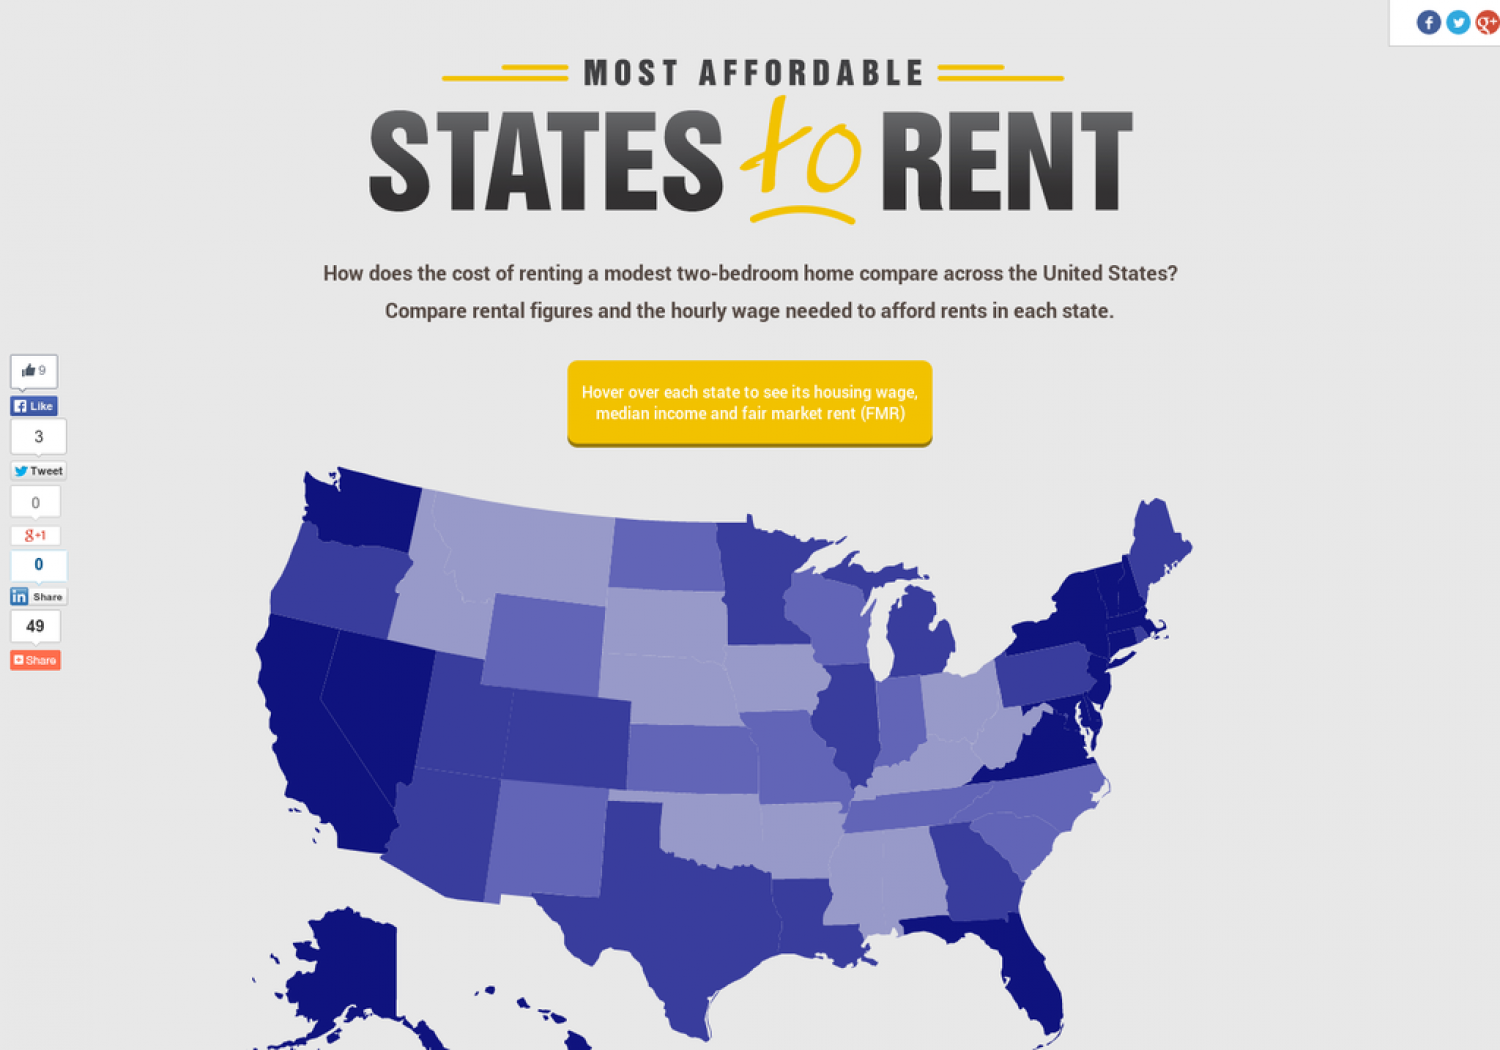 Most Affordable States to Rent Infographic